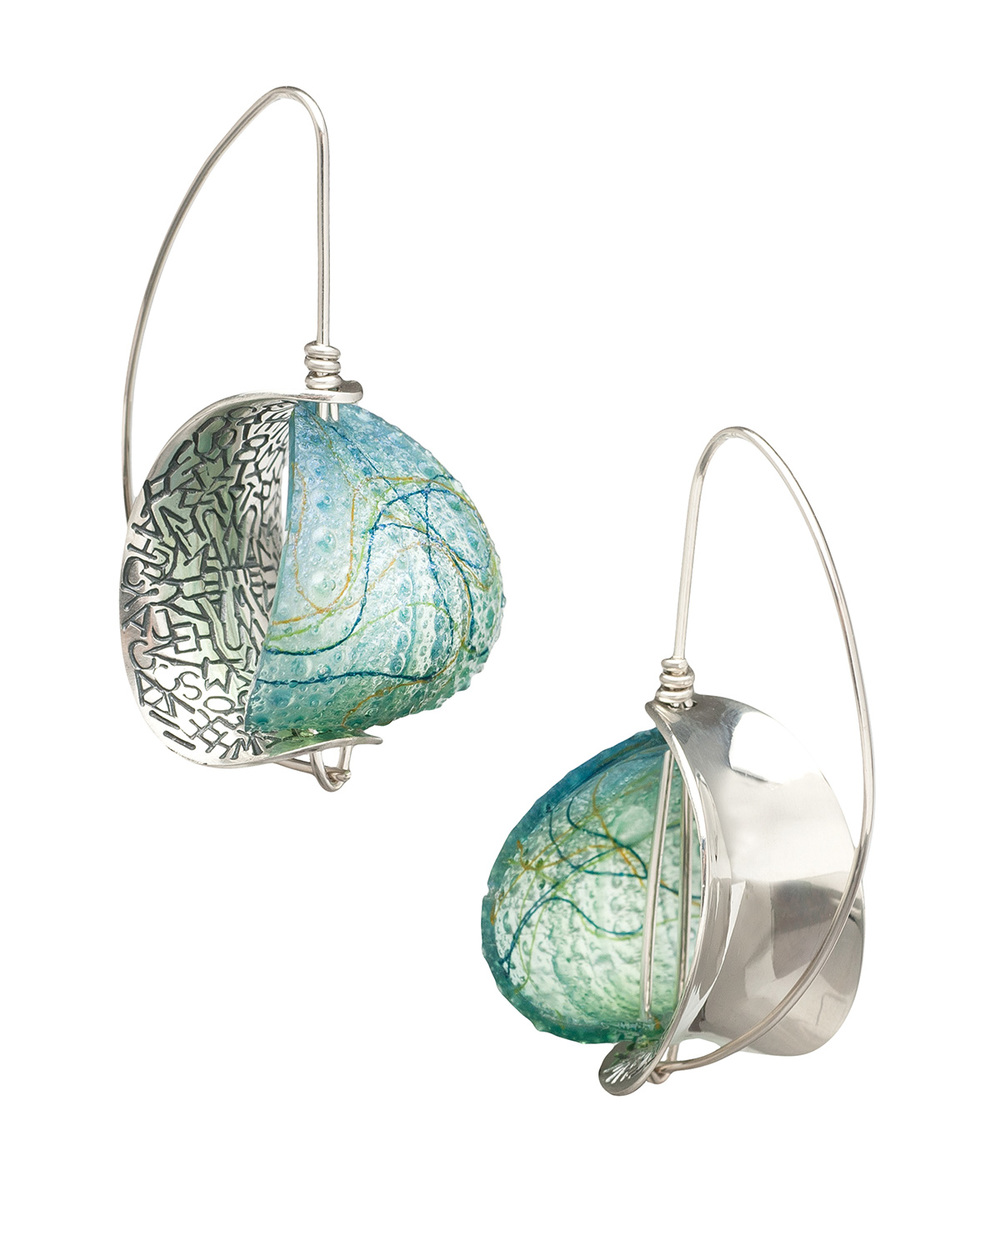 RETROFLEX  Earrings | 2015   | Mary Lynn Podiluk   Silver, dyed resin, thread 5H x 2.7W x 2.5D cm